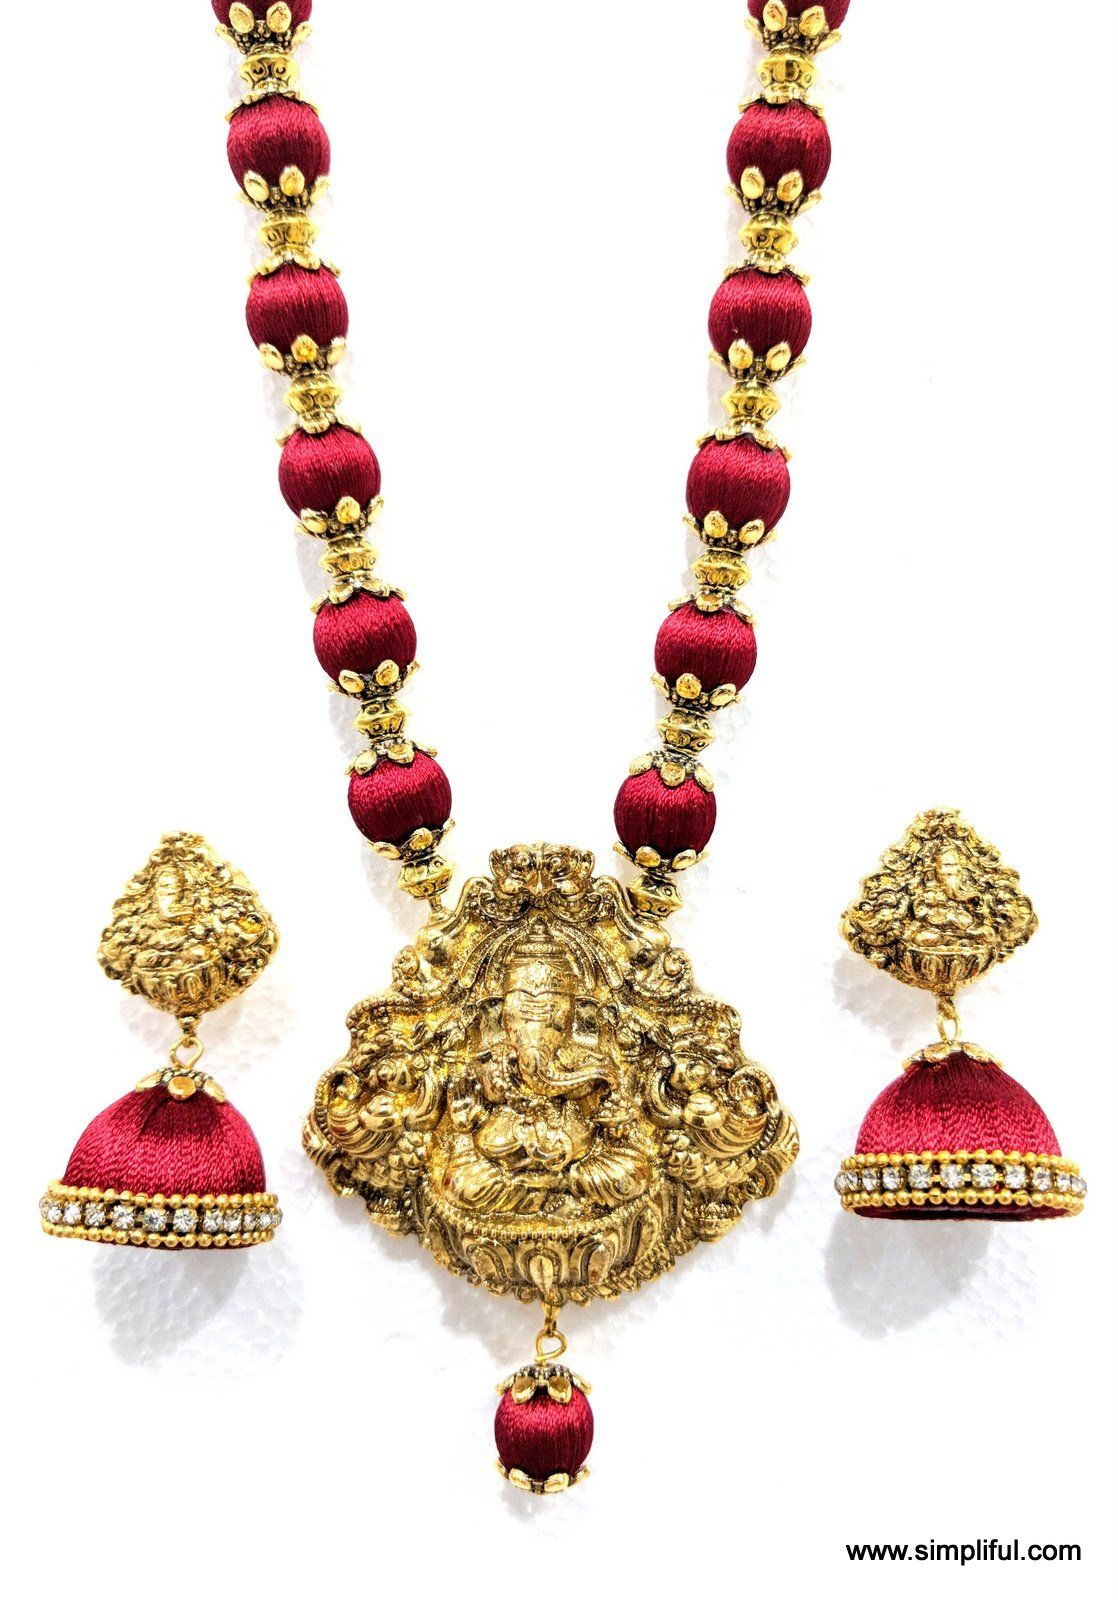 Silk thread lord ganesha pendant long chain necklace and single